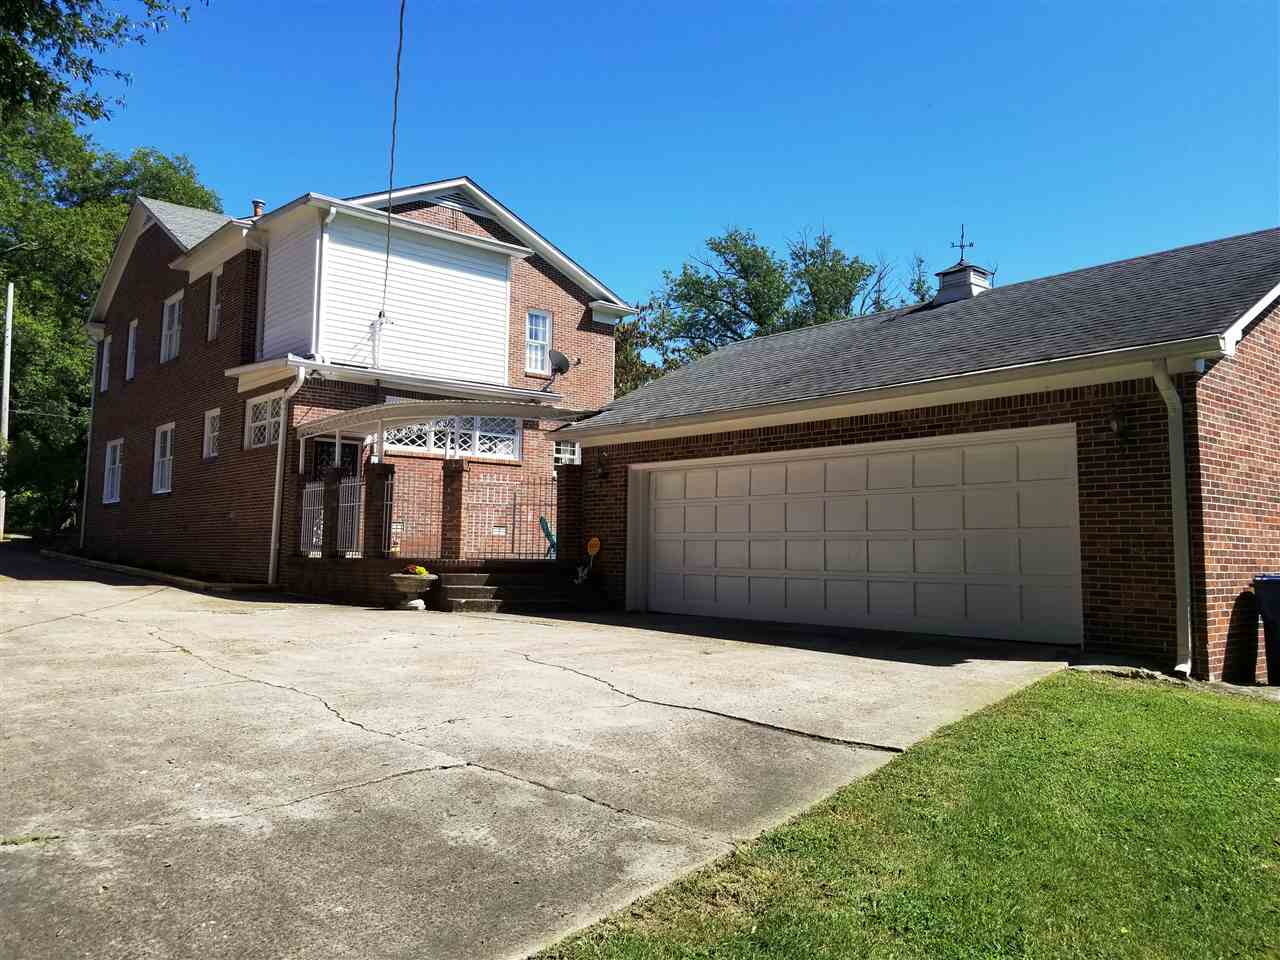 516 S High Street, Trenton, Tennessee 38382, 5 Bedrooms Bedrooms, ,3 BathroomsBathrooms,Residential,For Sale,516 S High Street,190036